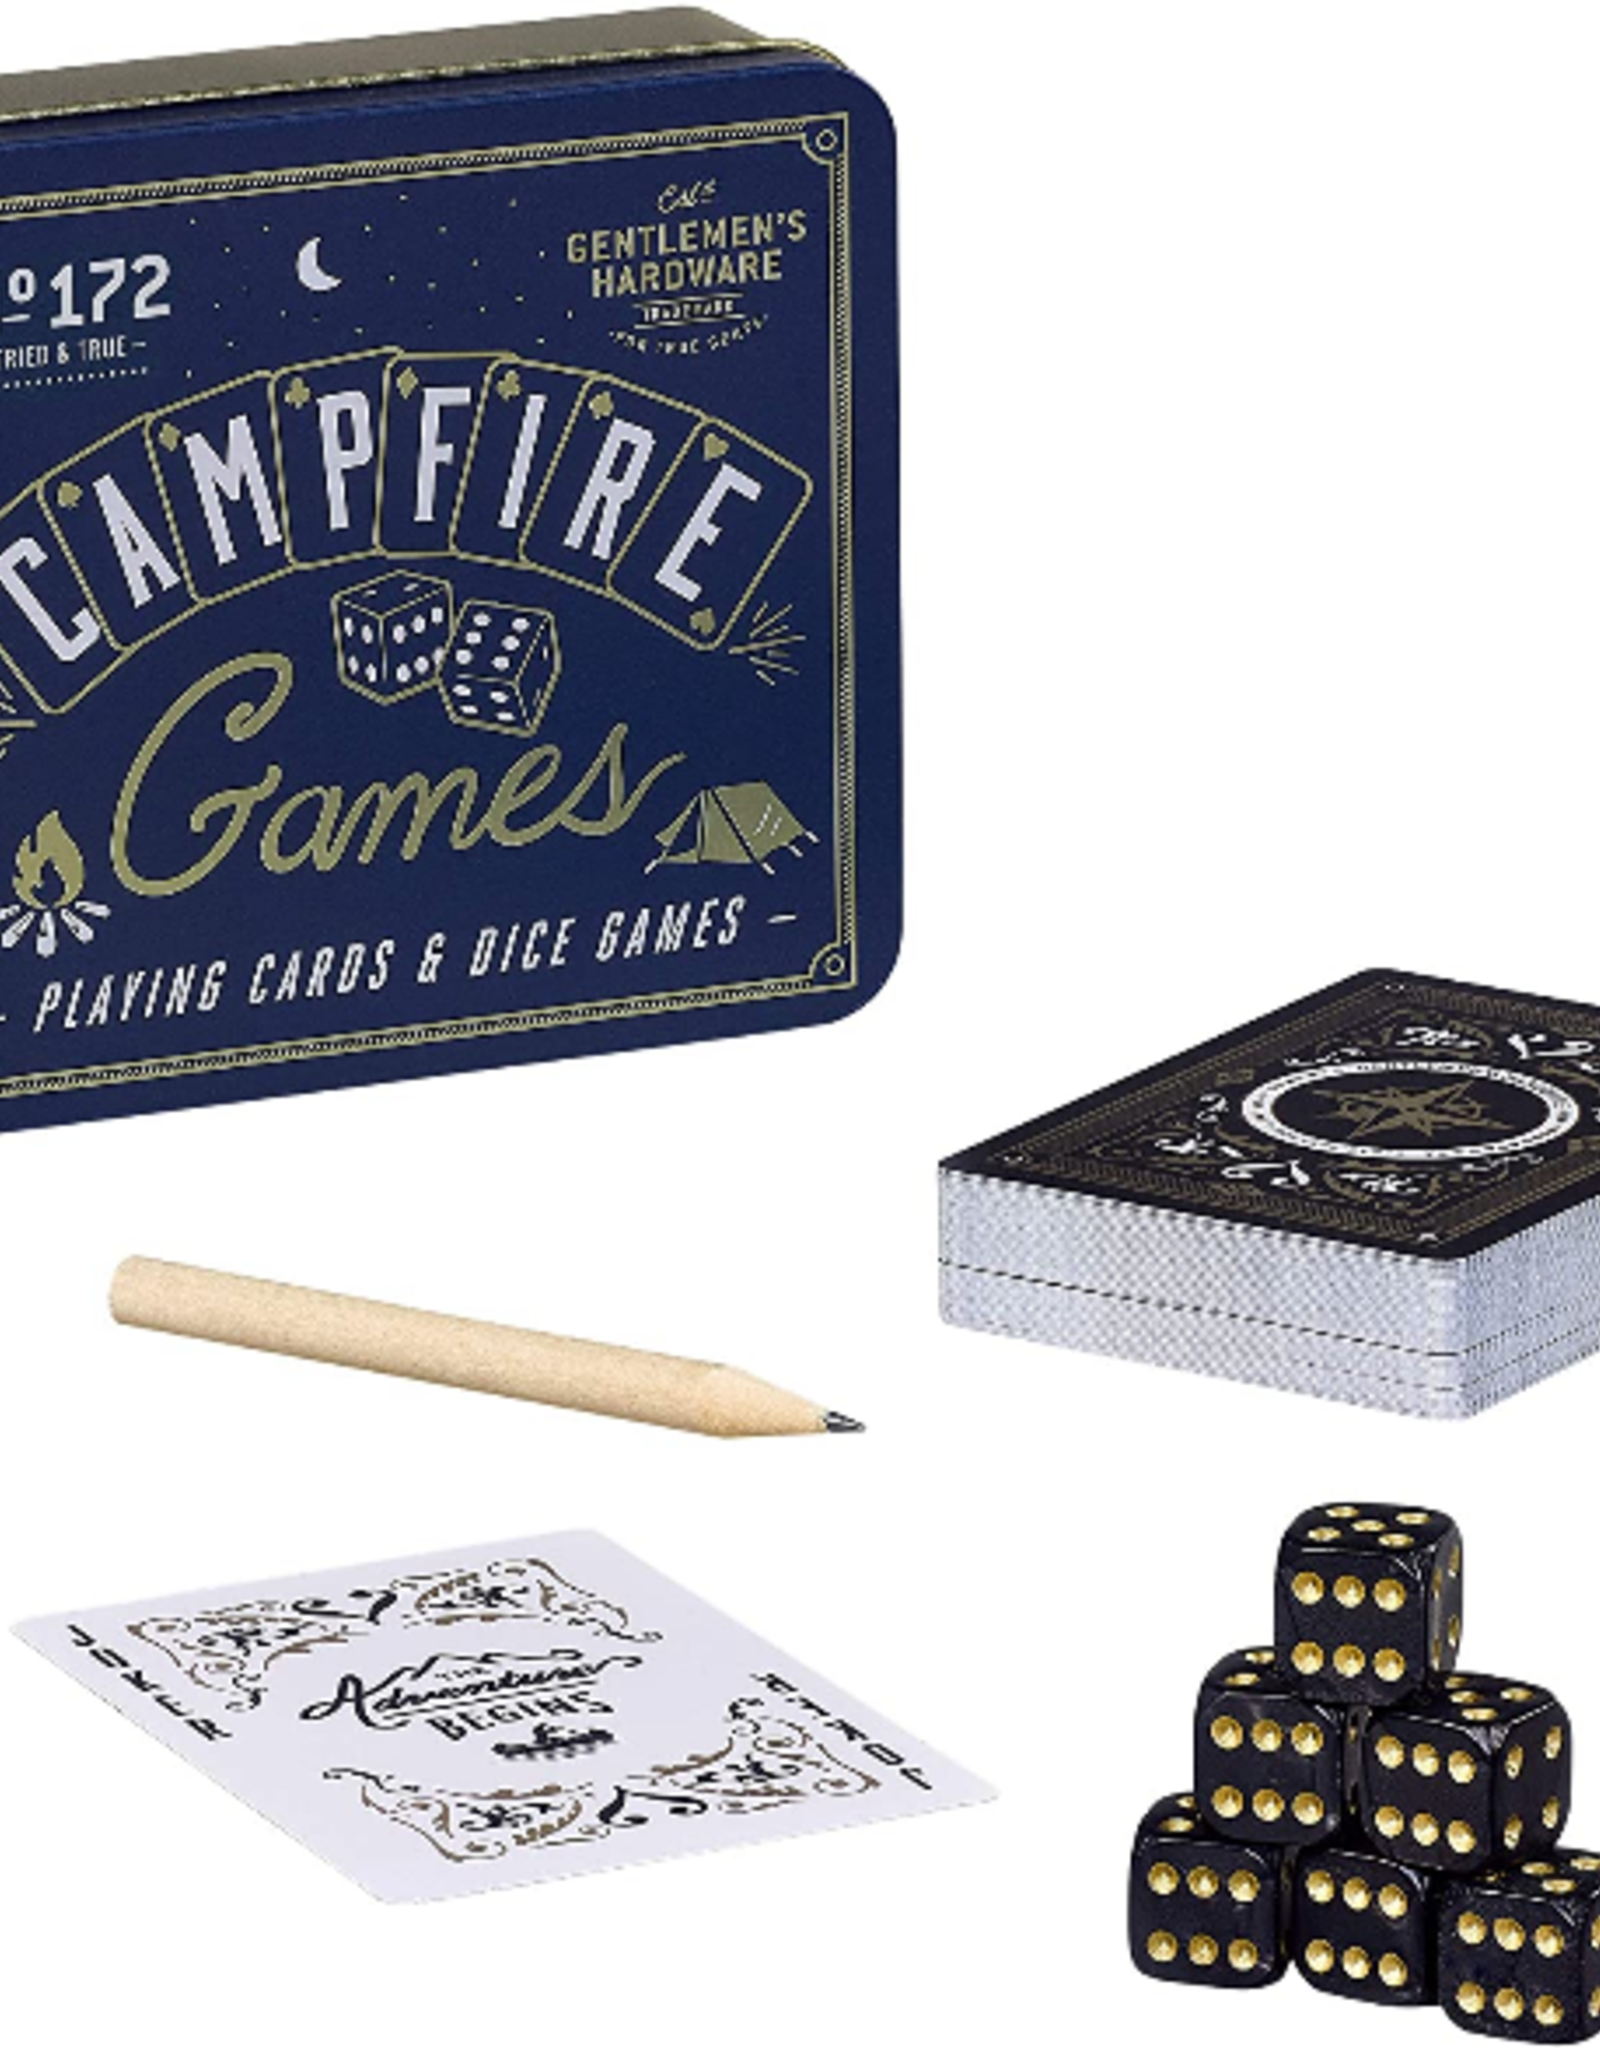 GAME CAMPFIRE CARDS AND DICE